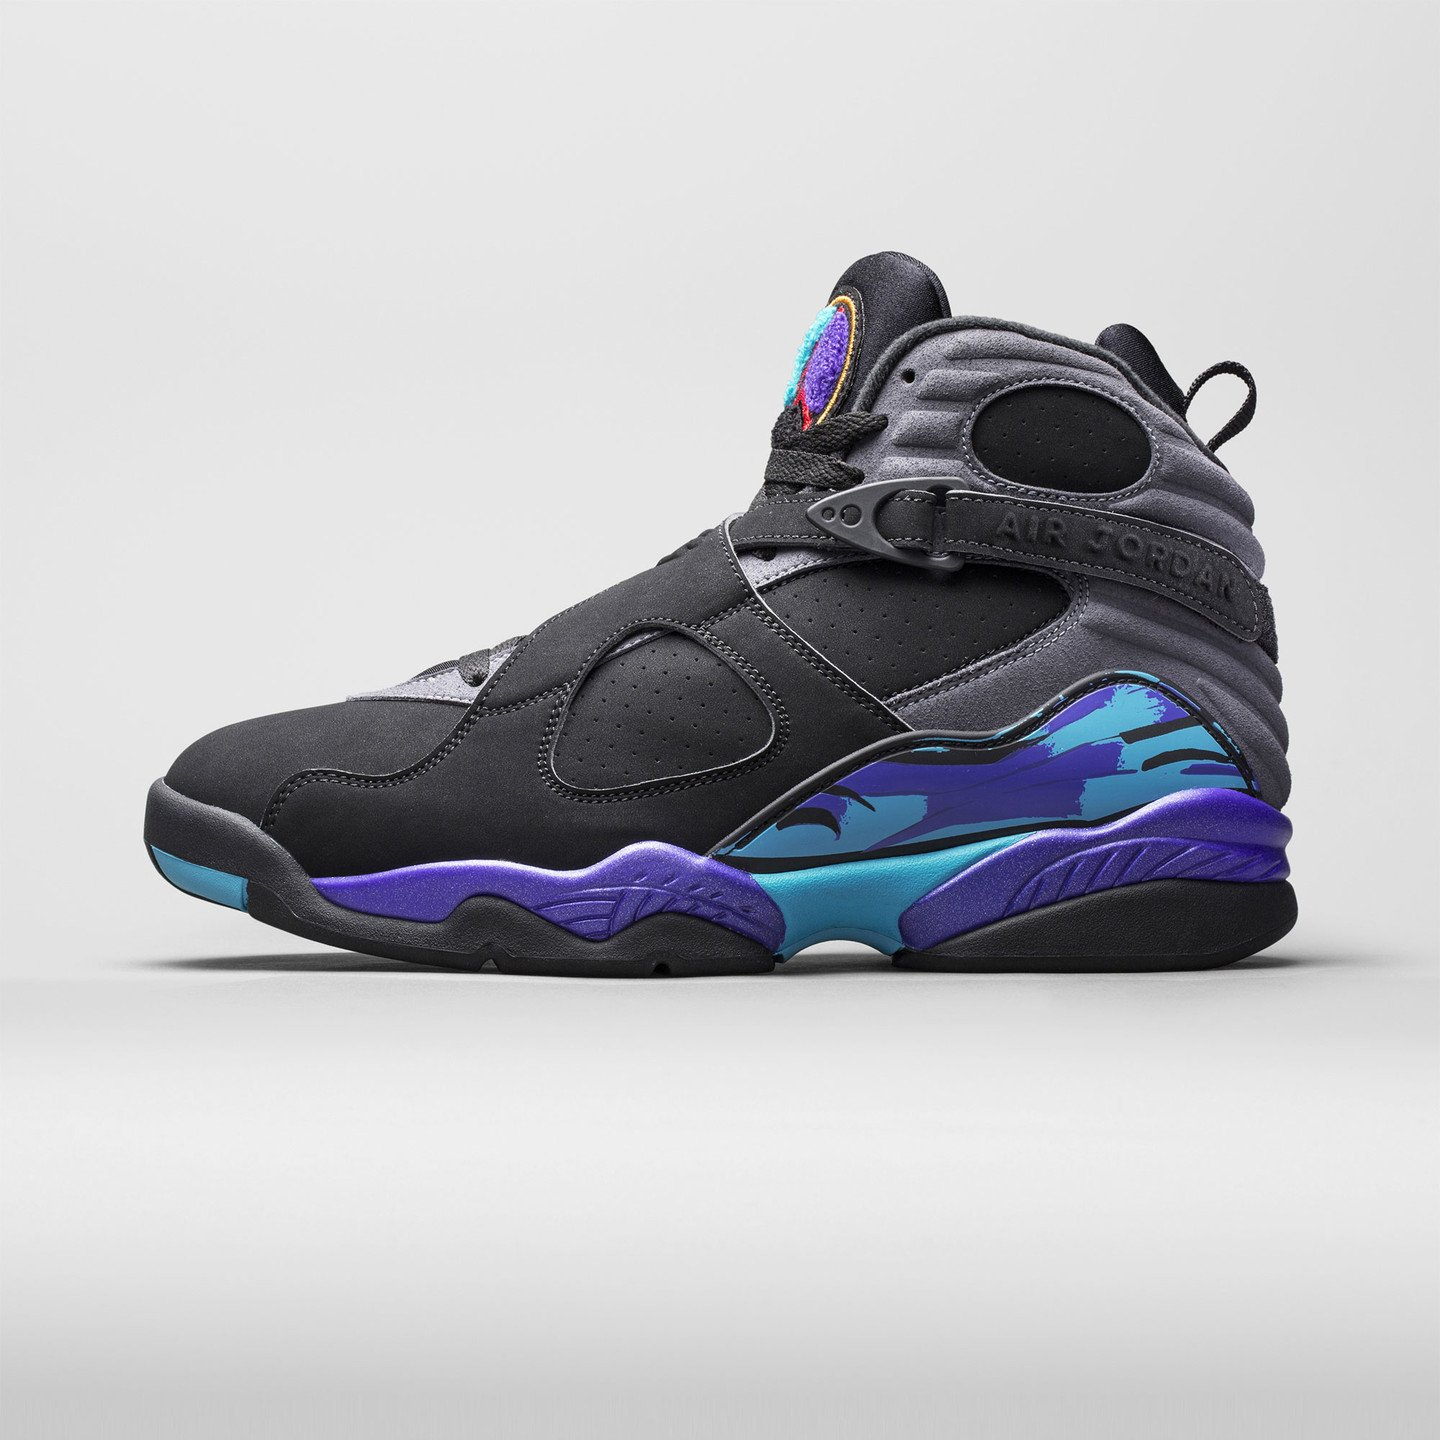 Jordan Air Jordan Retro 8 'Aqua' Black/True Red-Flint Grey-Bright Concord 305381-025-47